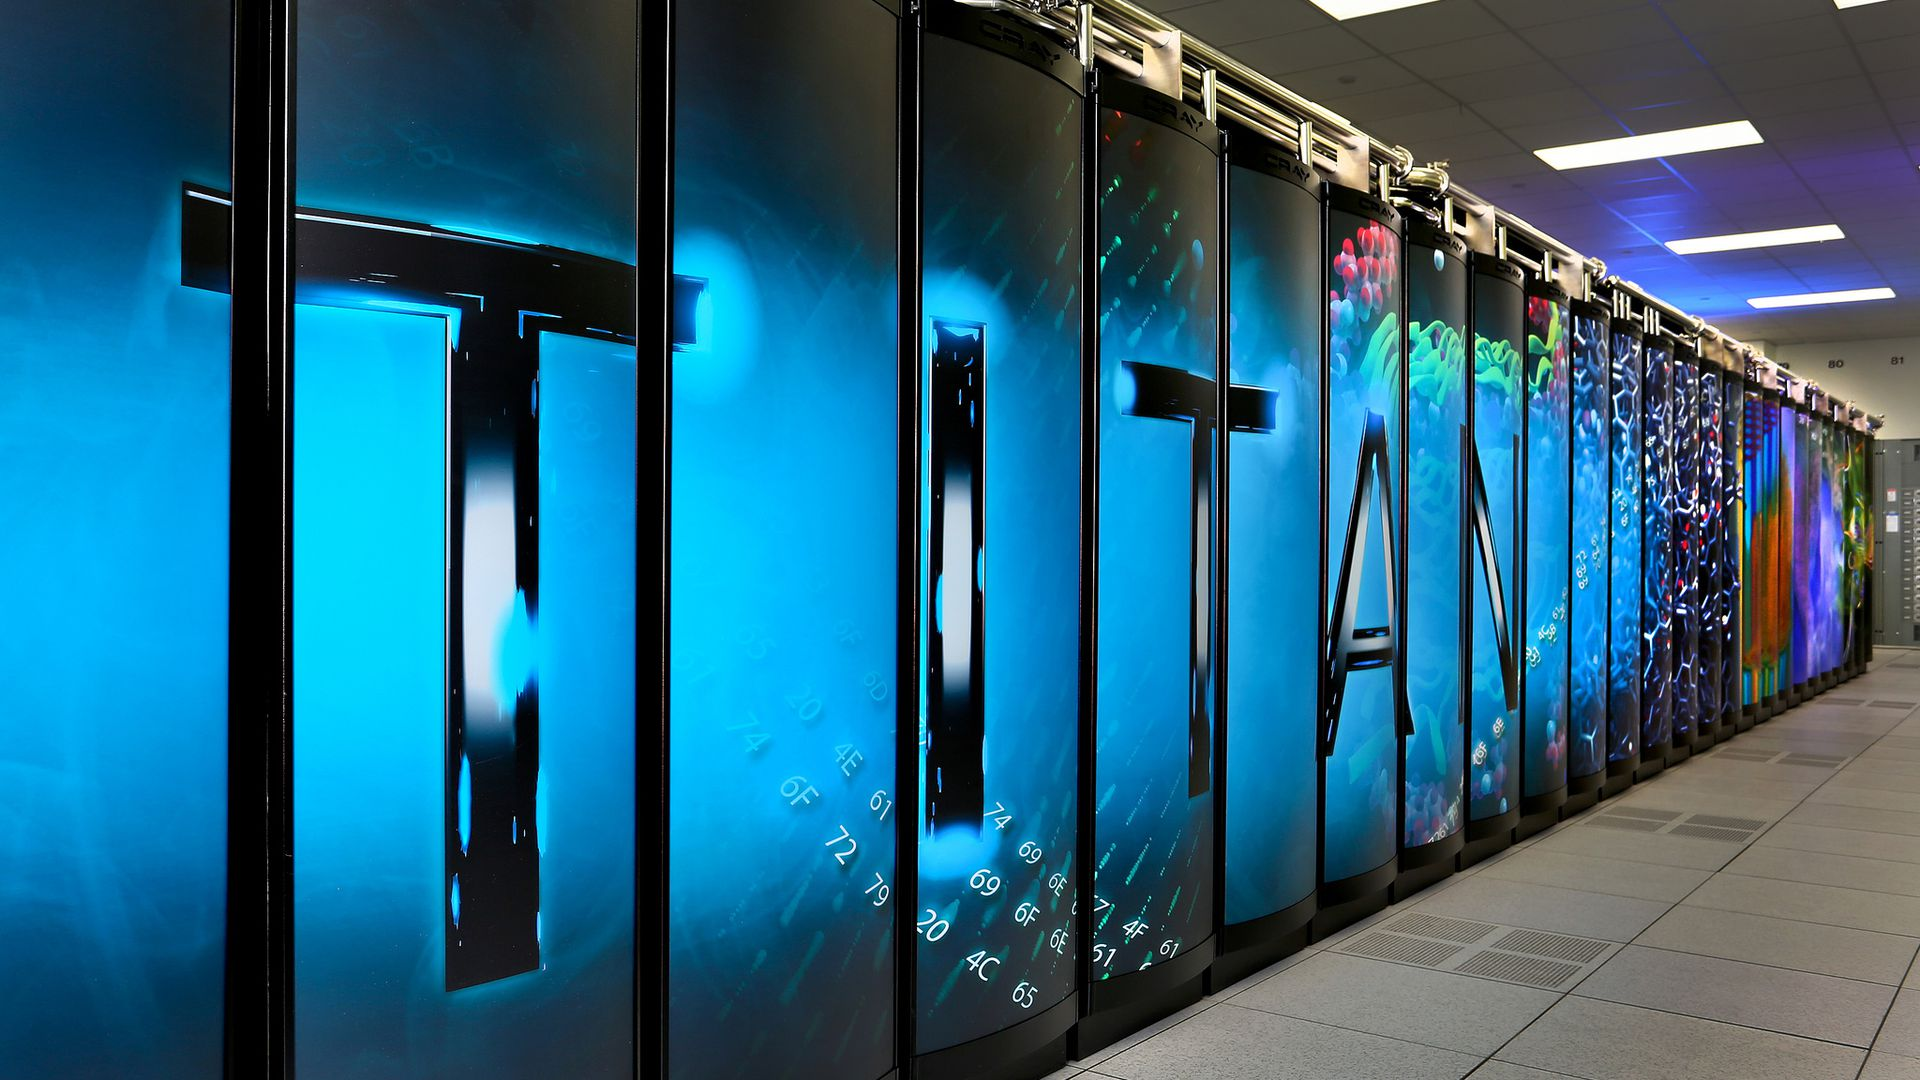 The Titan Supercomputer is one of the fastest systems in the world.